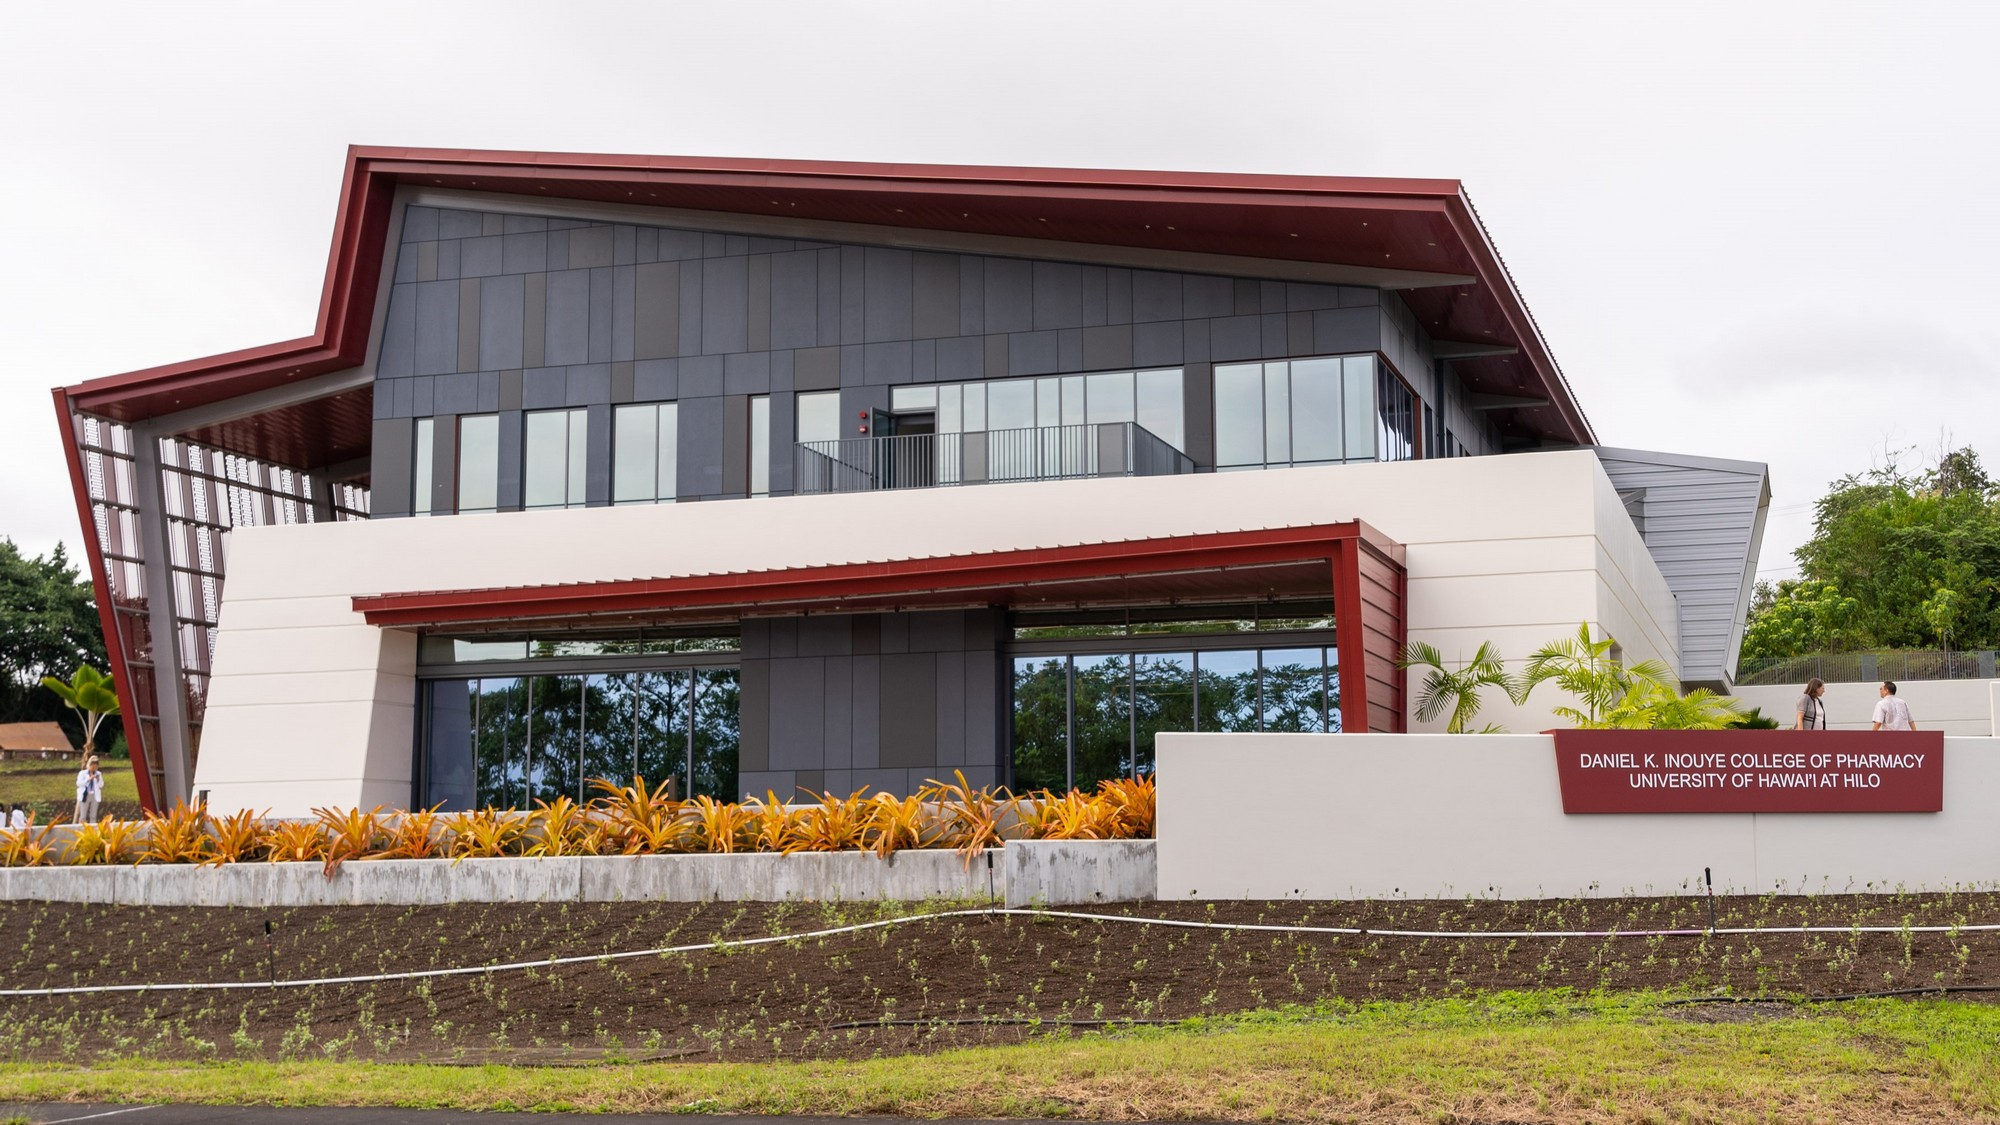 "New pharmacy building, two-story, glass front, red roof, sign says ""Daniel k Inouye College of Pharmacy, University of Hawaii at Hilo."